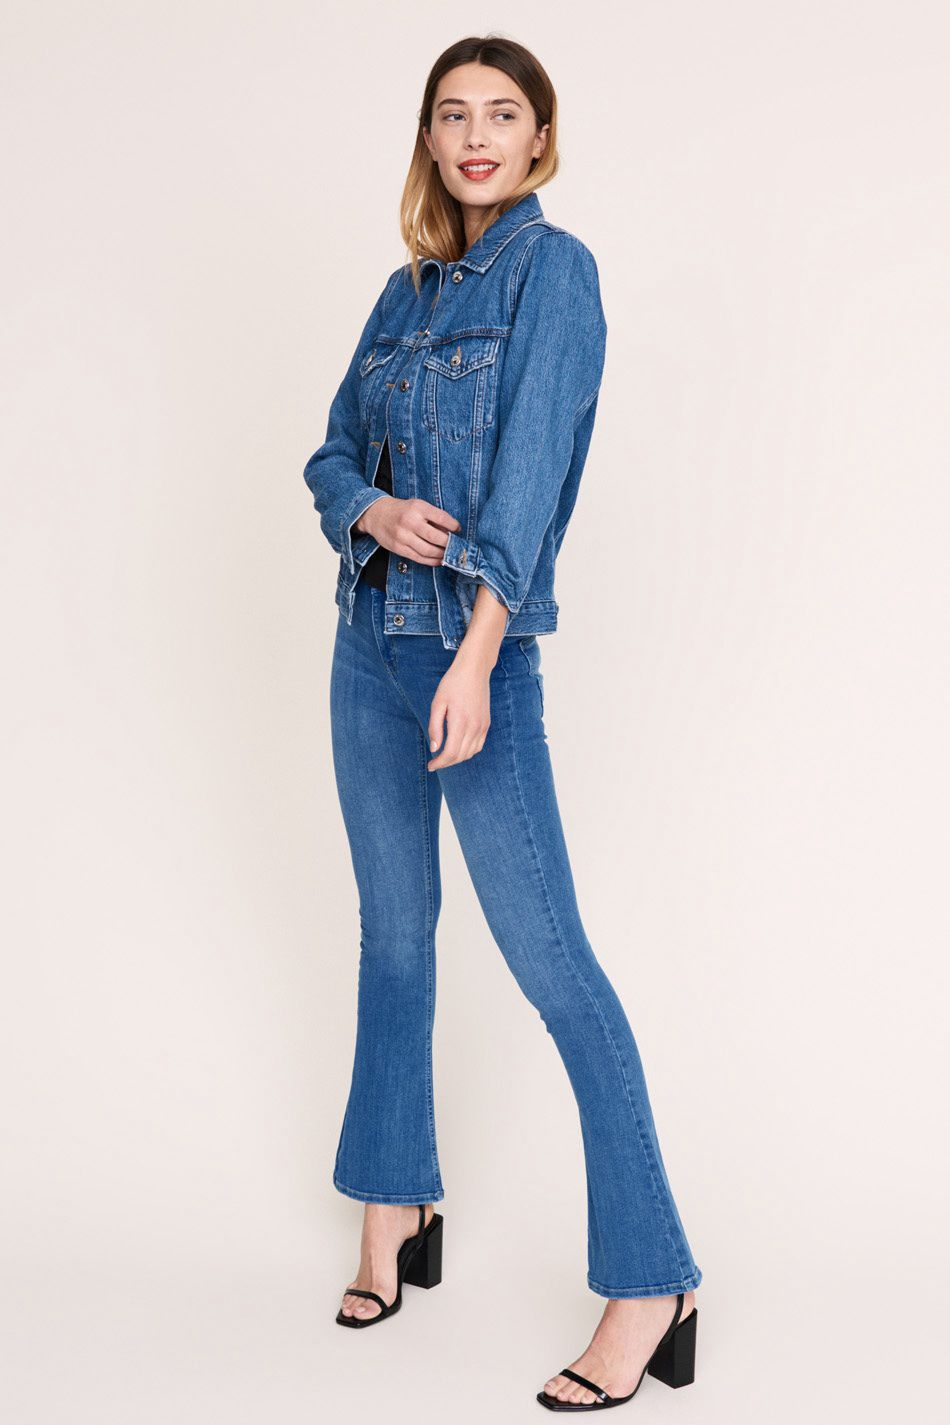 gina tricot bootcut jeans